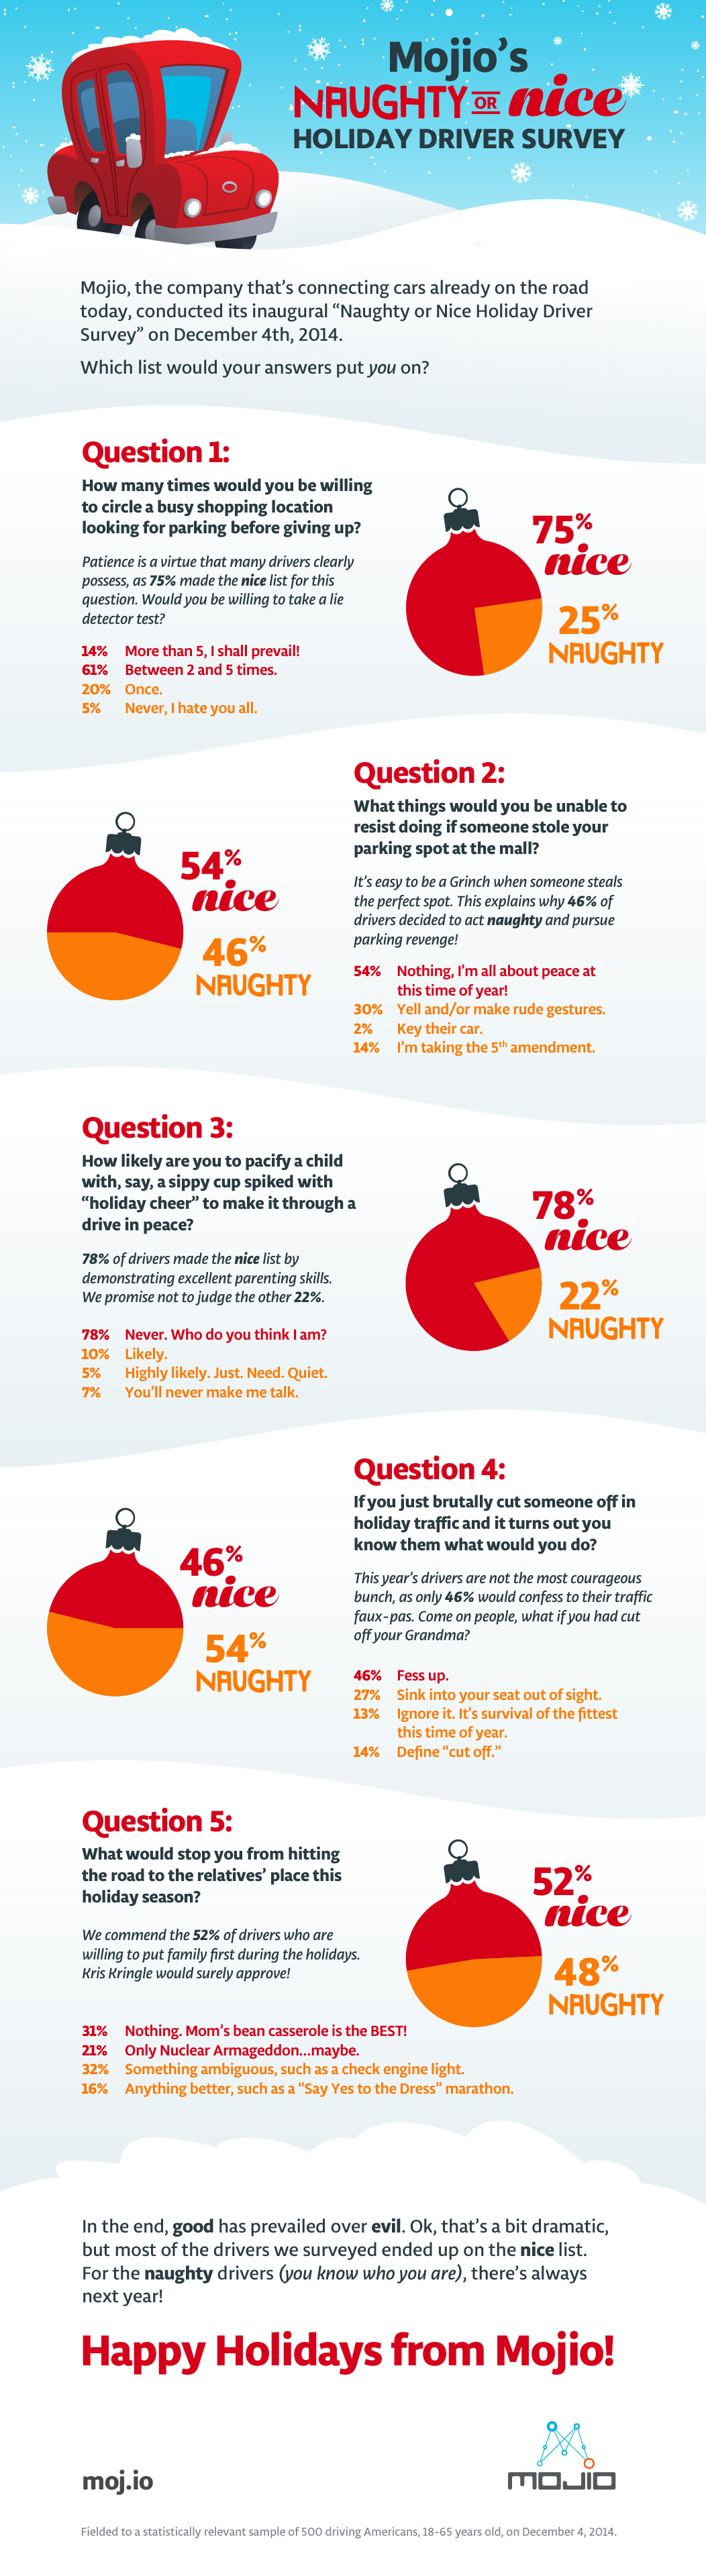 Mojio-naughty-nice-holiday-driver-survey-infographic